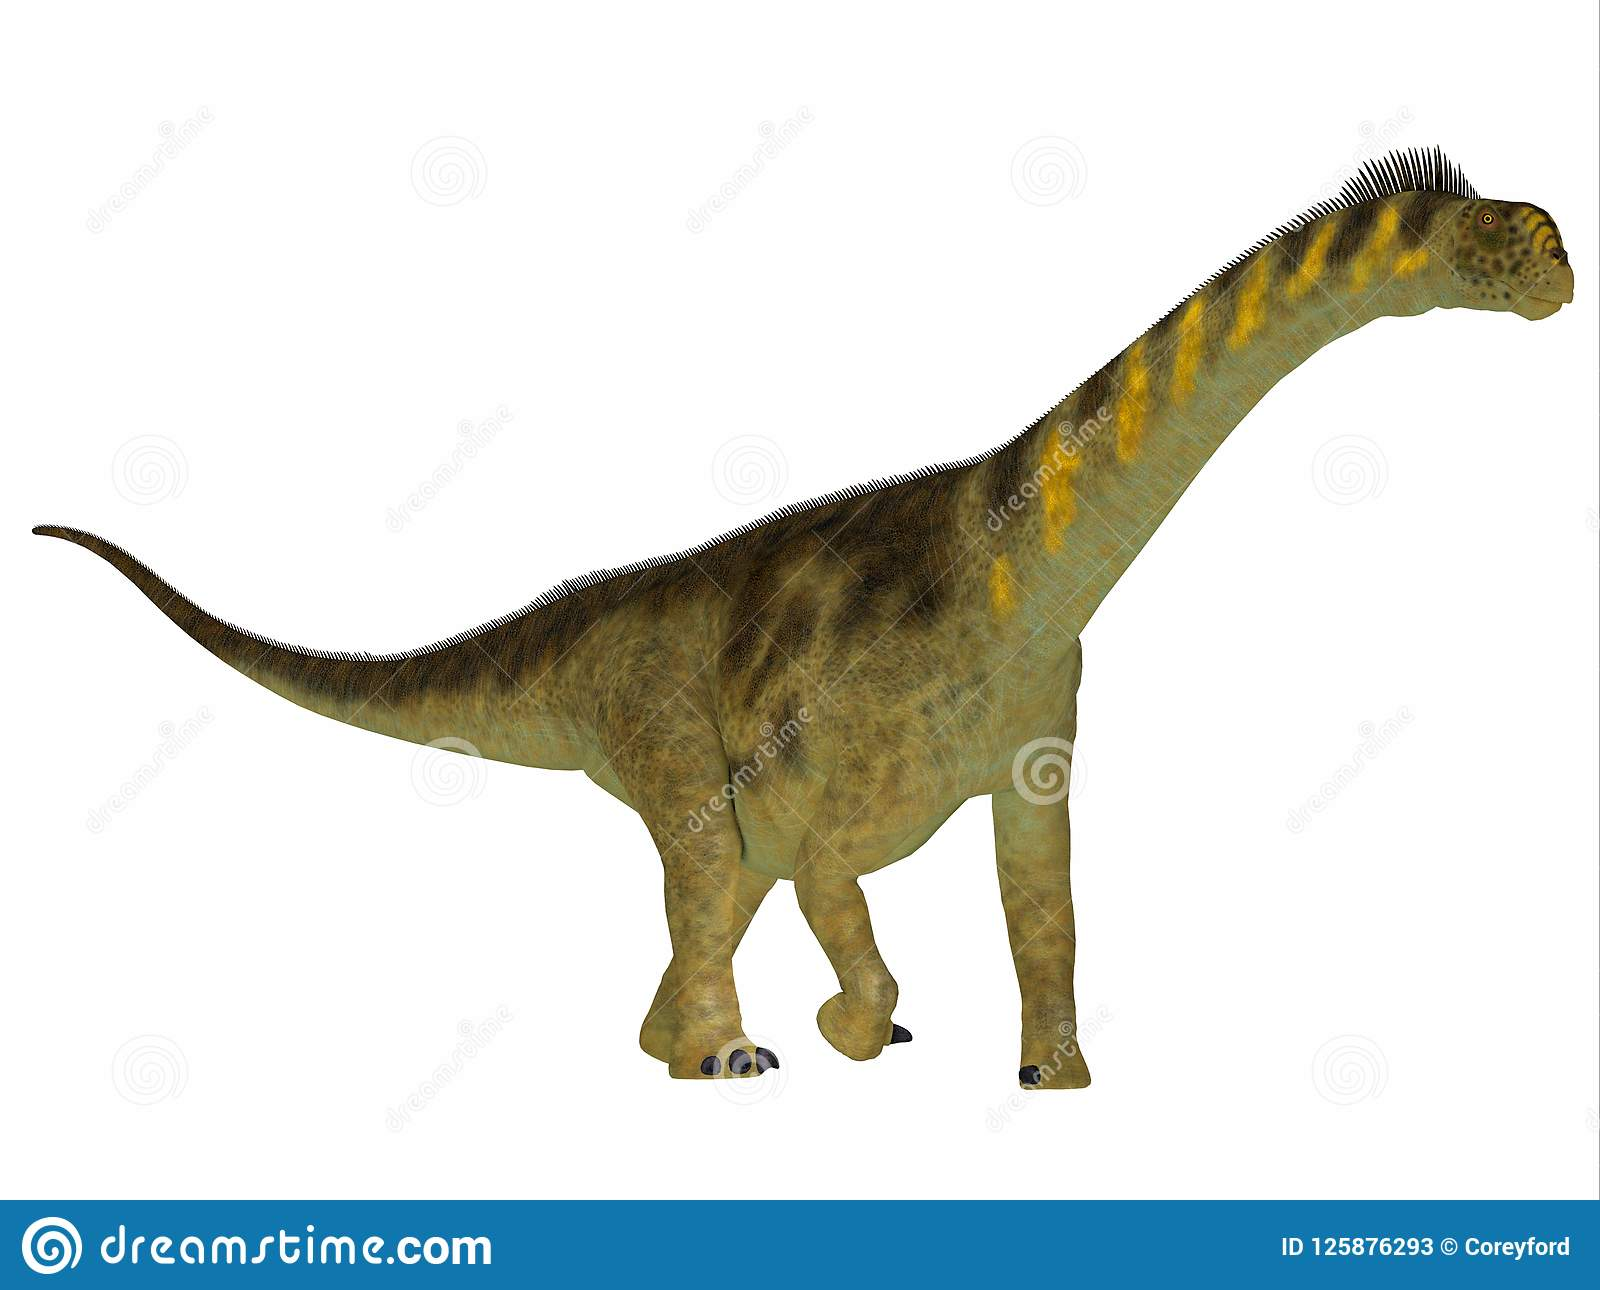 Camarasaurus Dinosaur Side Profile Stock Illustration - Illustration ... 0f969bebac46